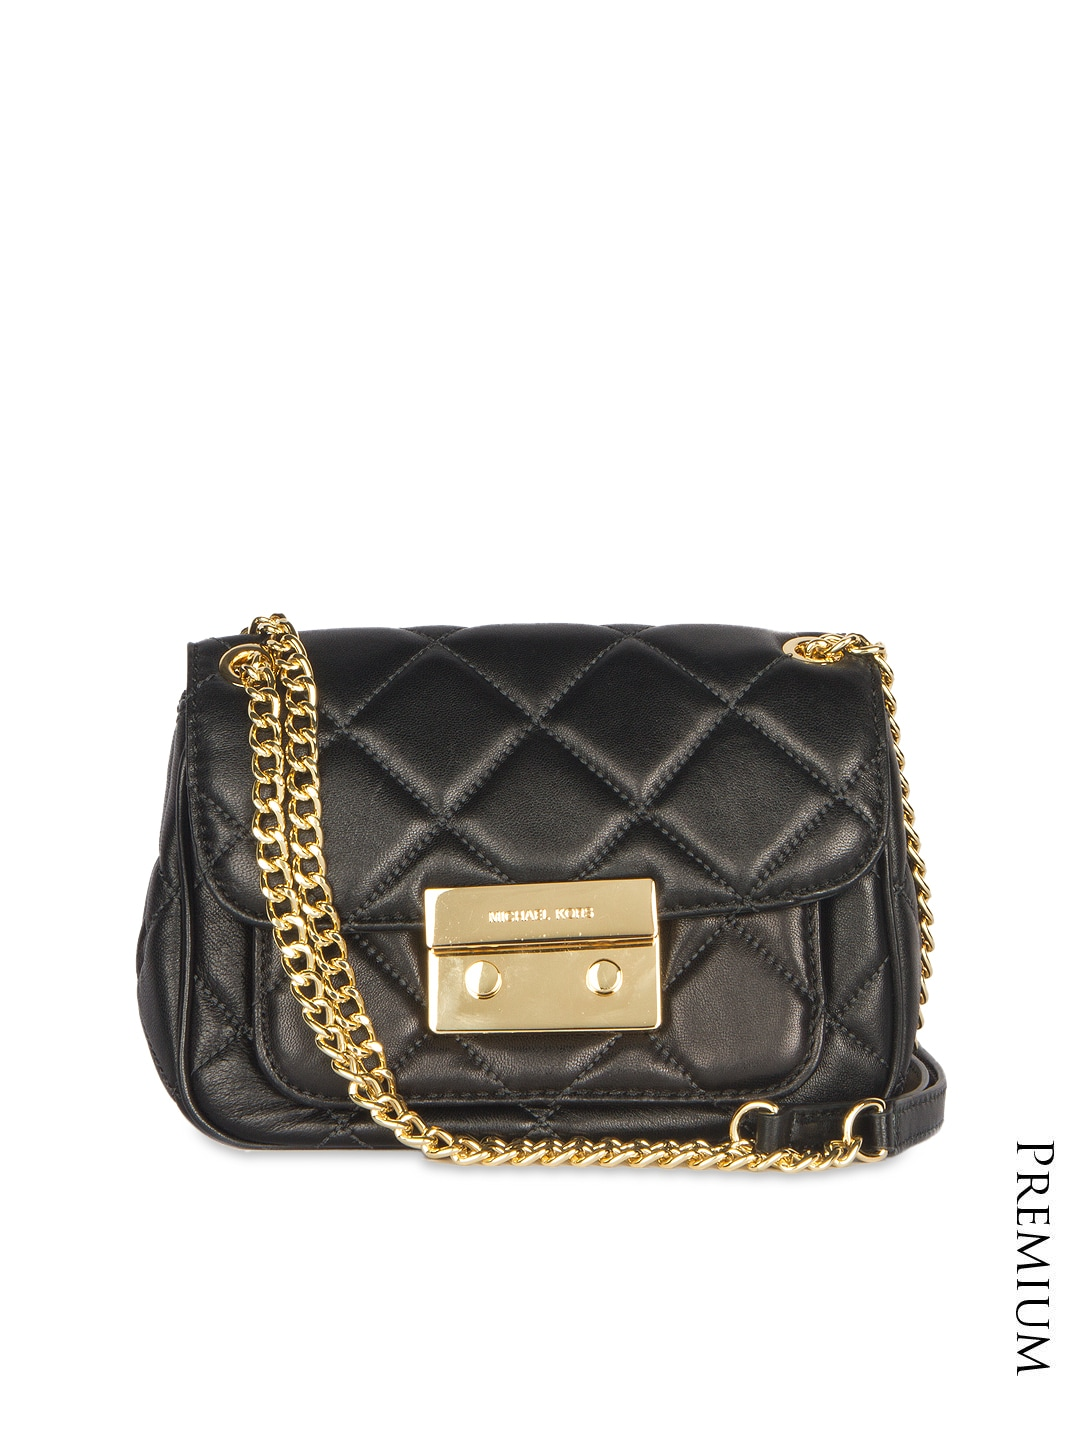 bbe4257c6a92 Michael kors 7247-black Black Quilted Leather Sling Bag - Best Price ...